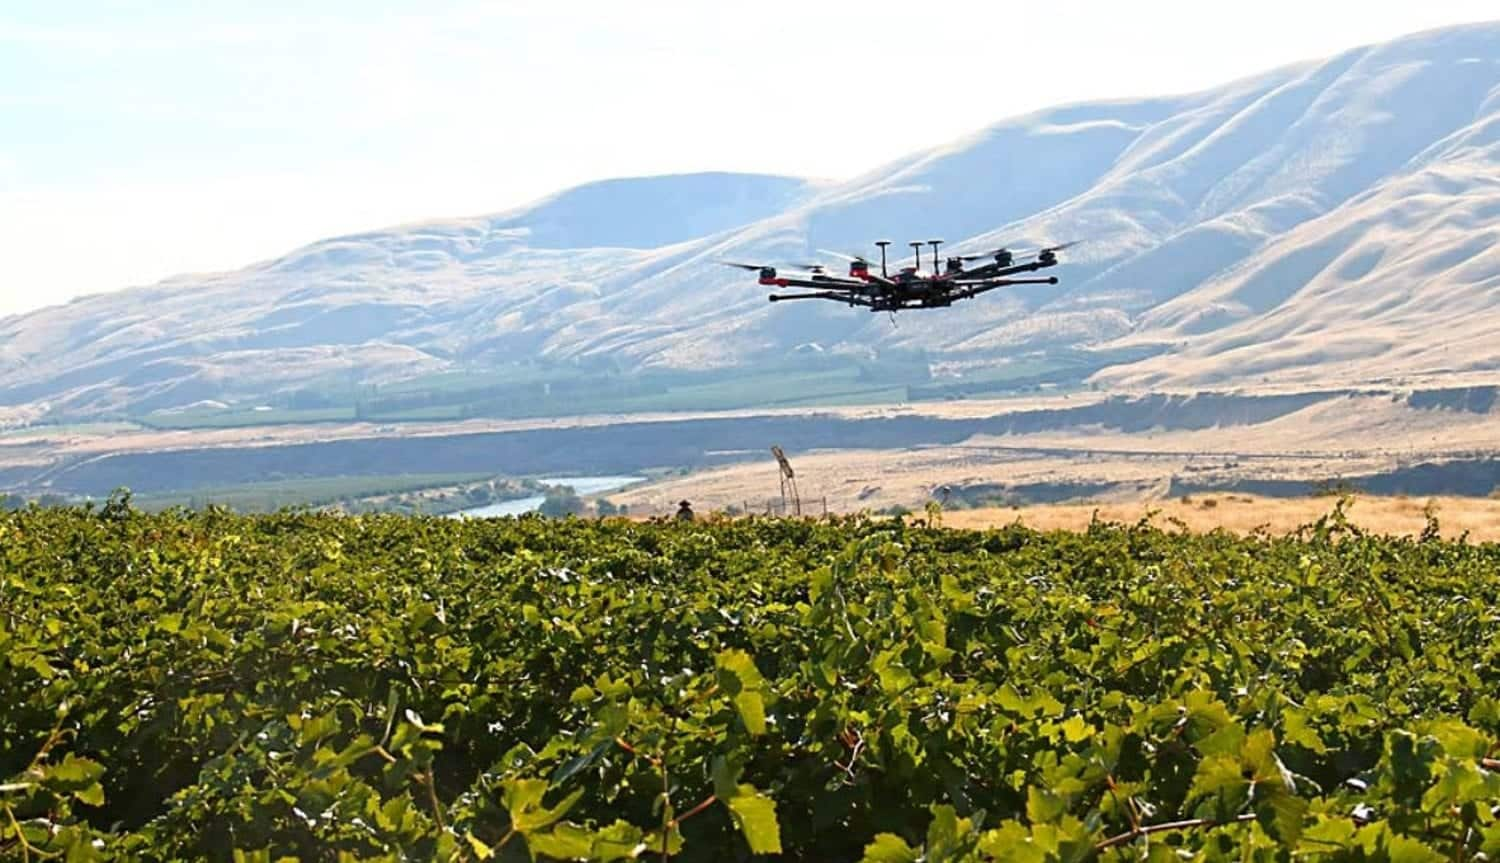 Washington State University uses drones to deter birds in trials